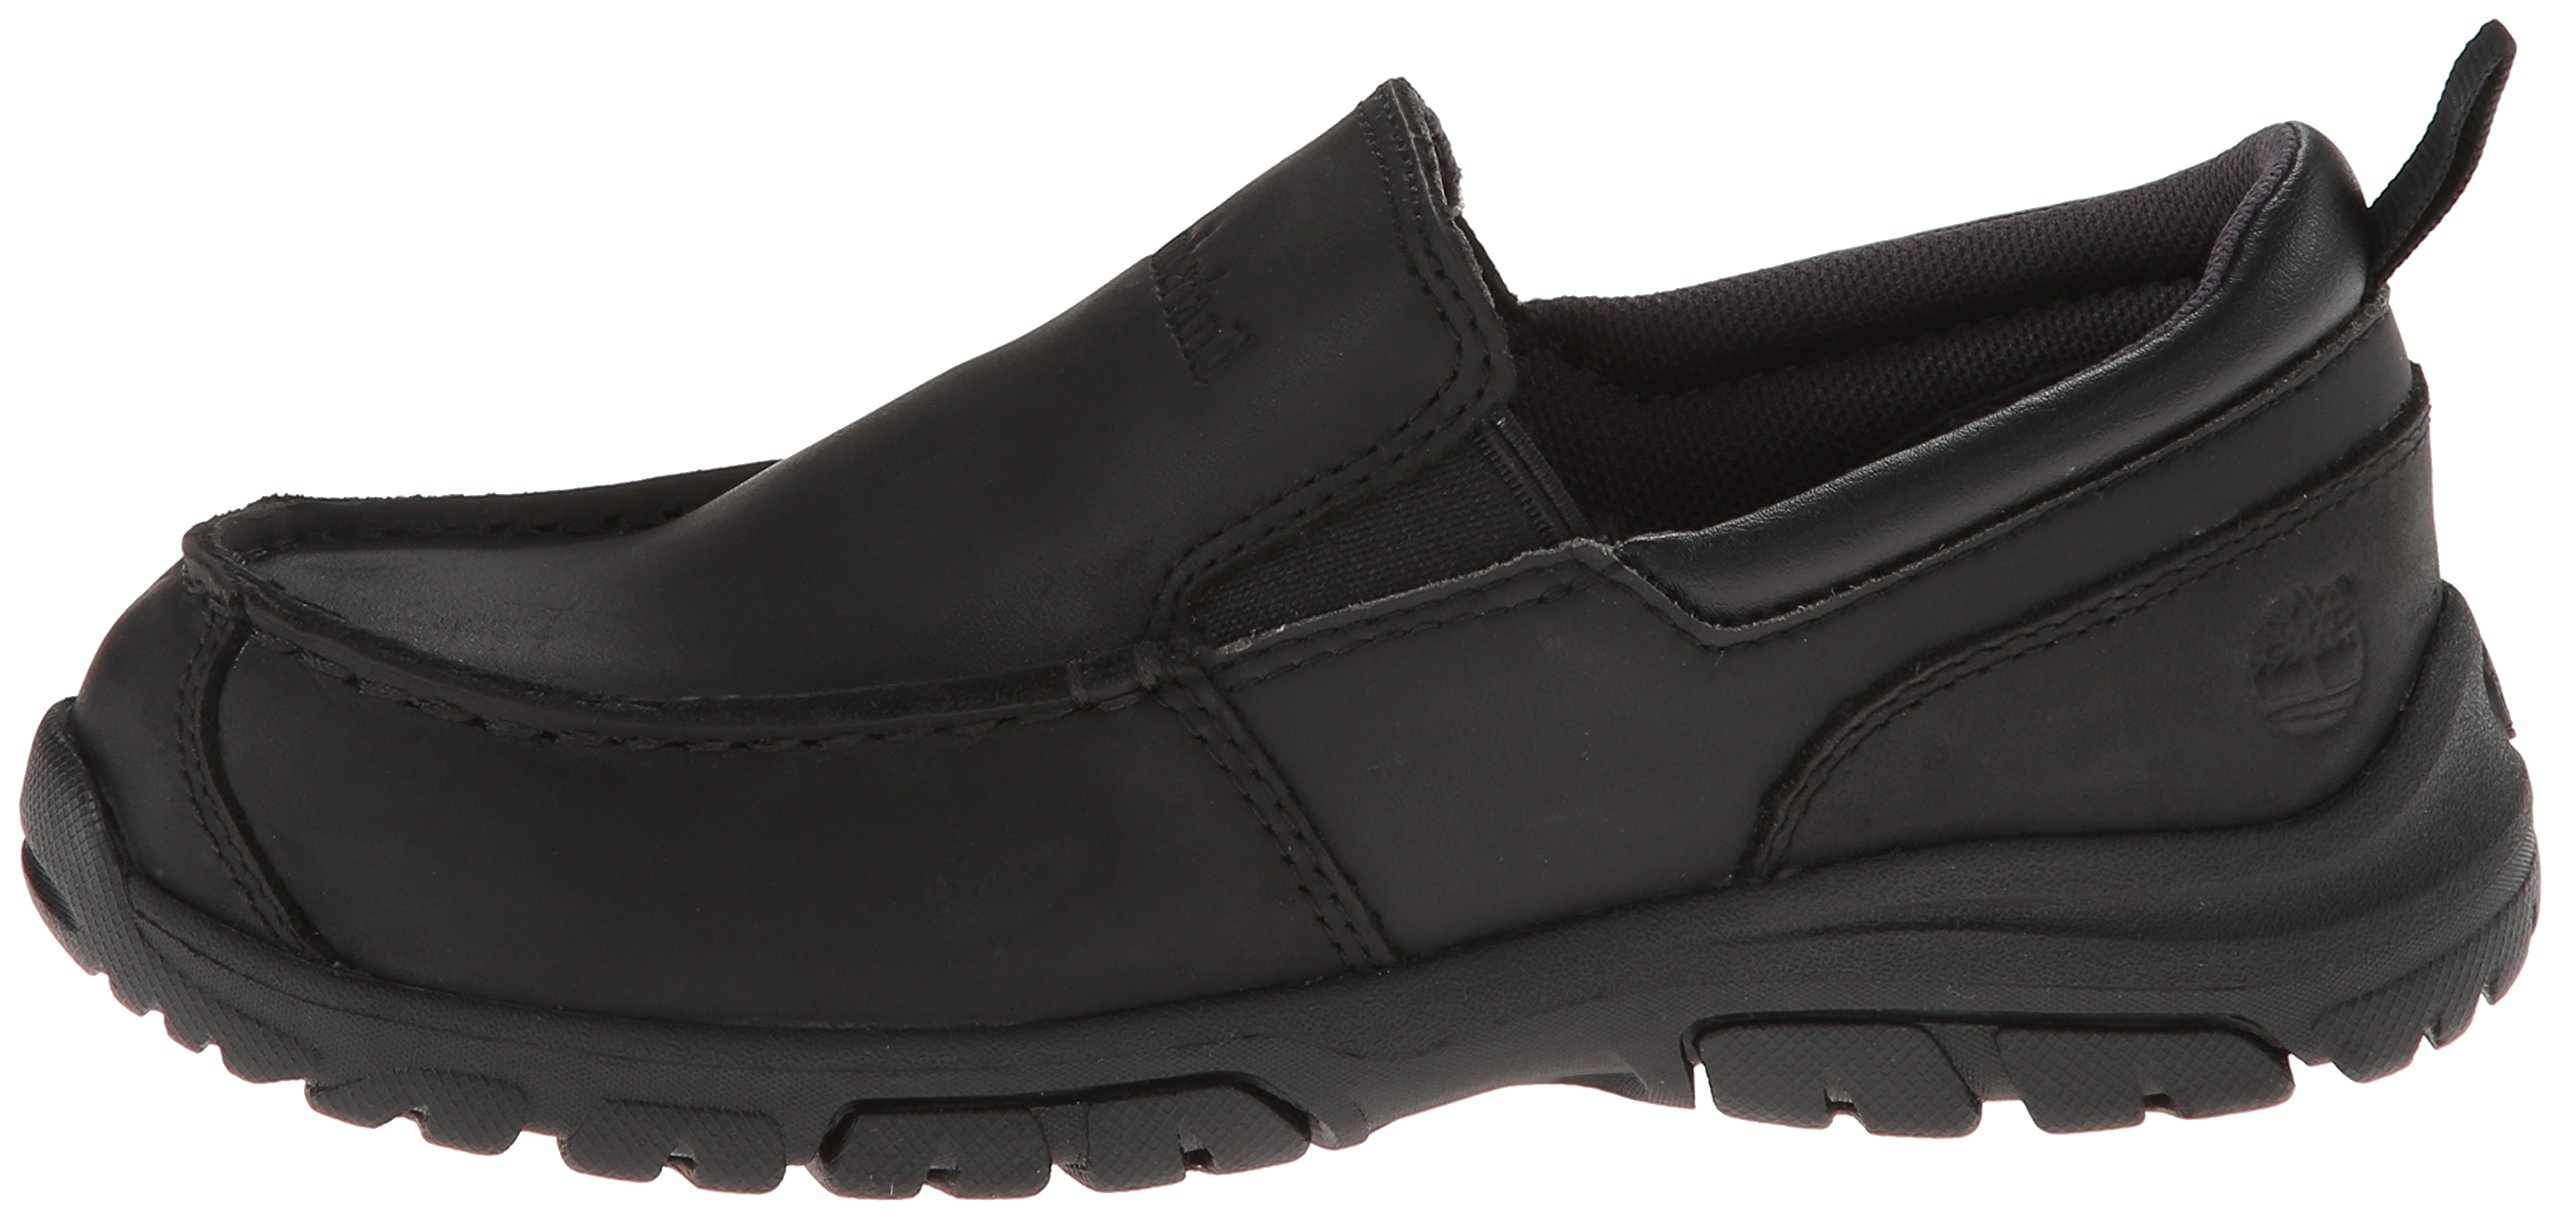 Timberland Discovery Pass Moc Toe Moc Toe Slip-On (Toddler/Little Kid/Big Kid),Black,9.5 M US Toddler by Timberland (Image #5)